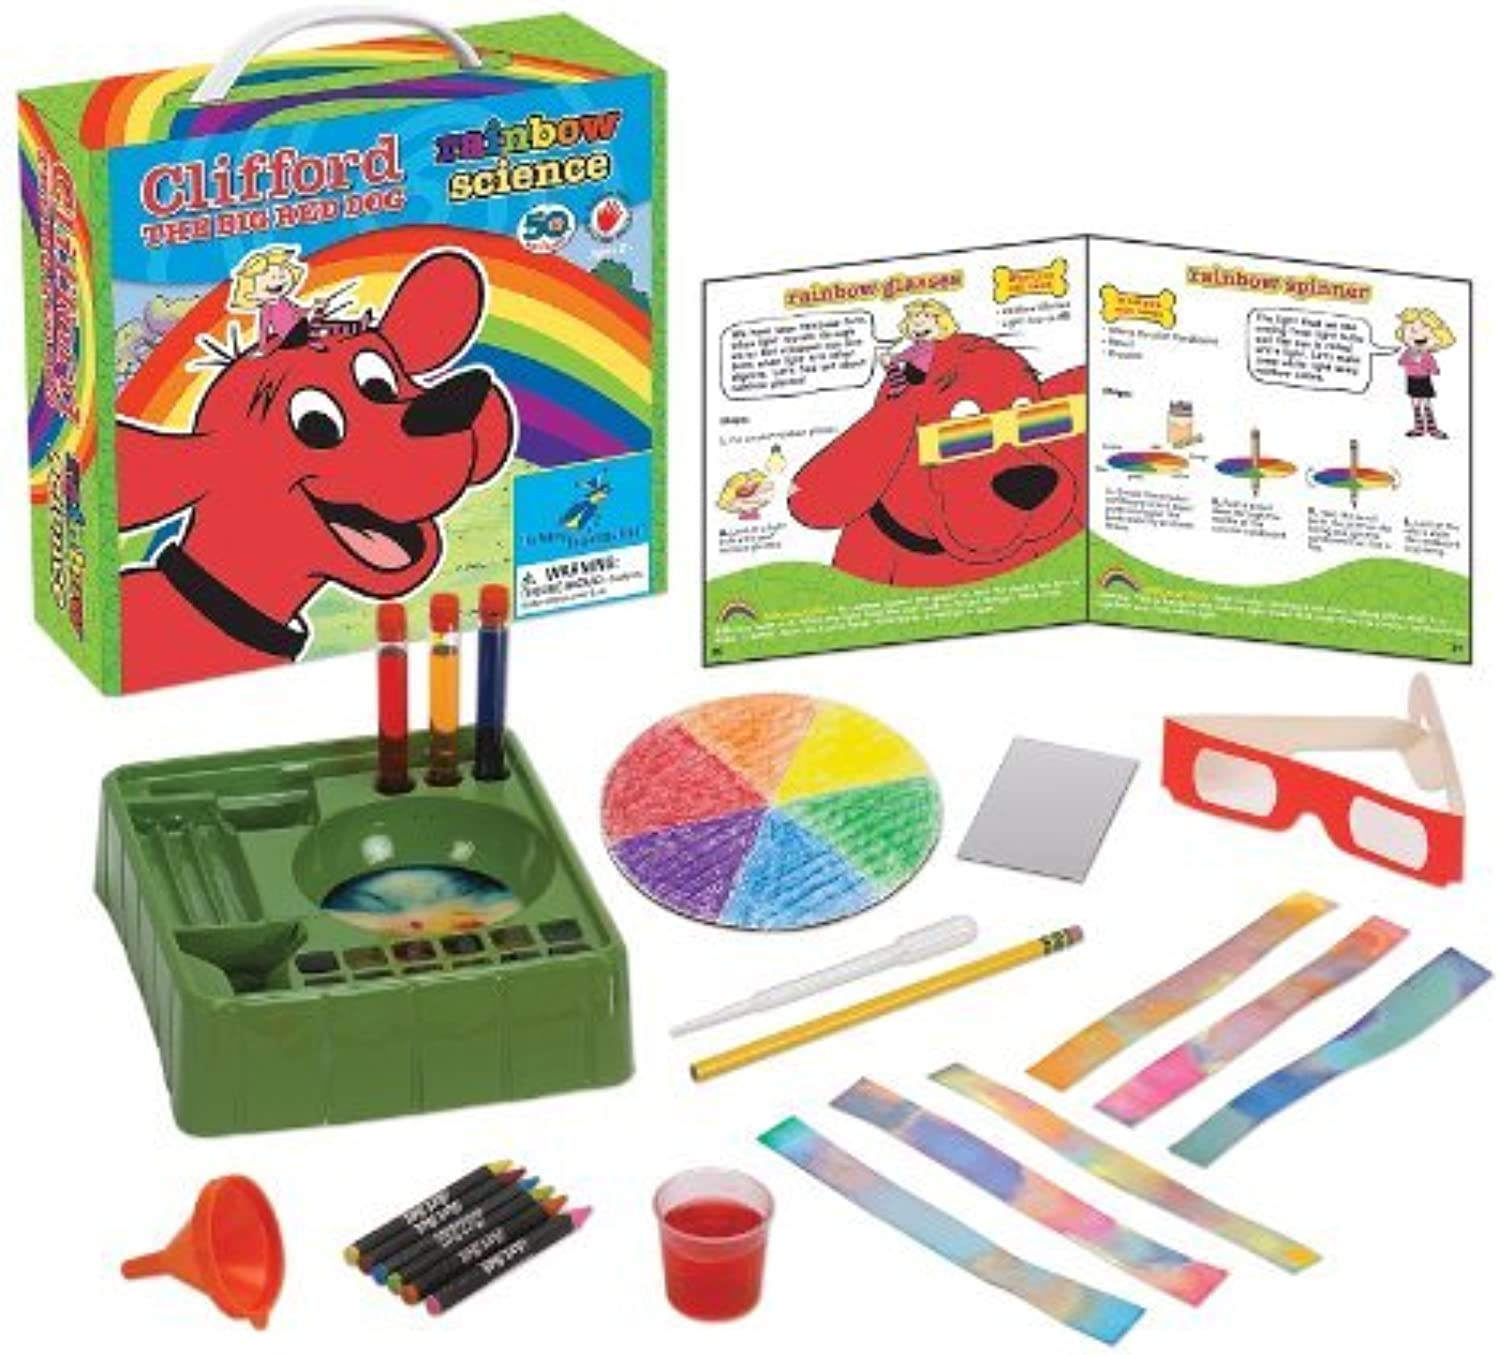 promociones de descuento Young Scientist Club Clifford The Big rojo Dog Dog Dog Rainbow Science Kit by Clifford The Big rojo Dog  clásico atemporal